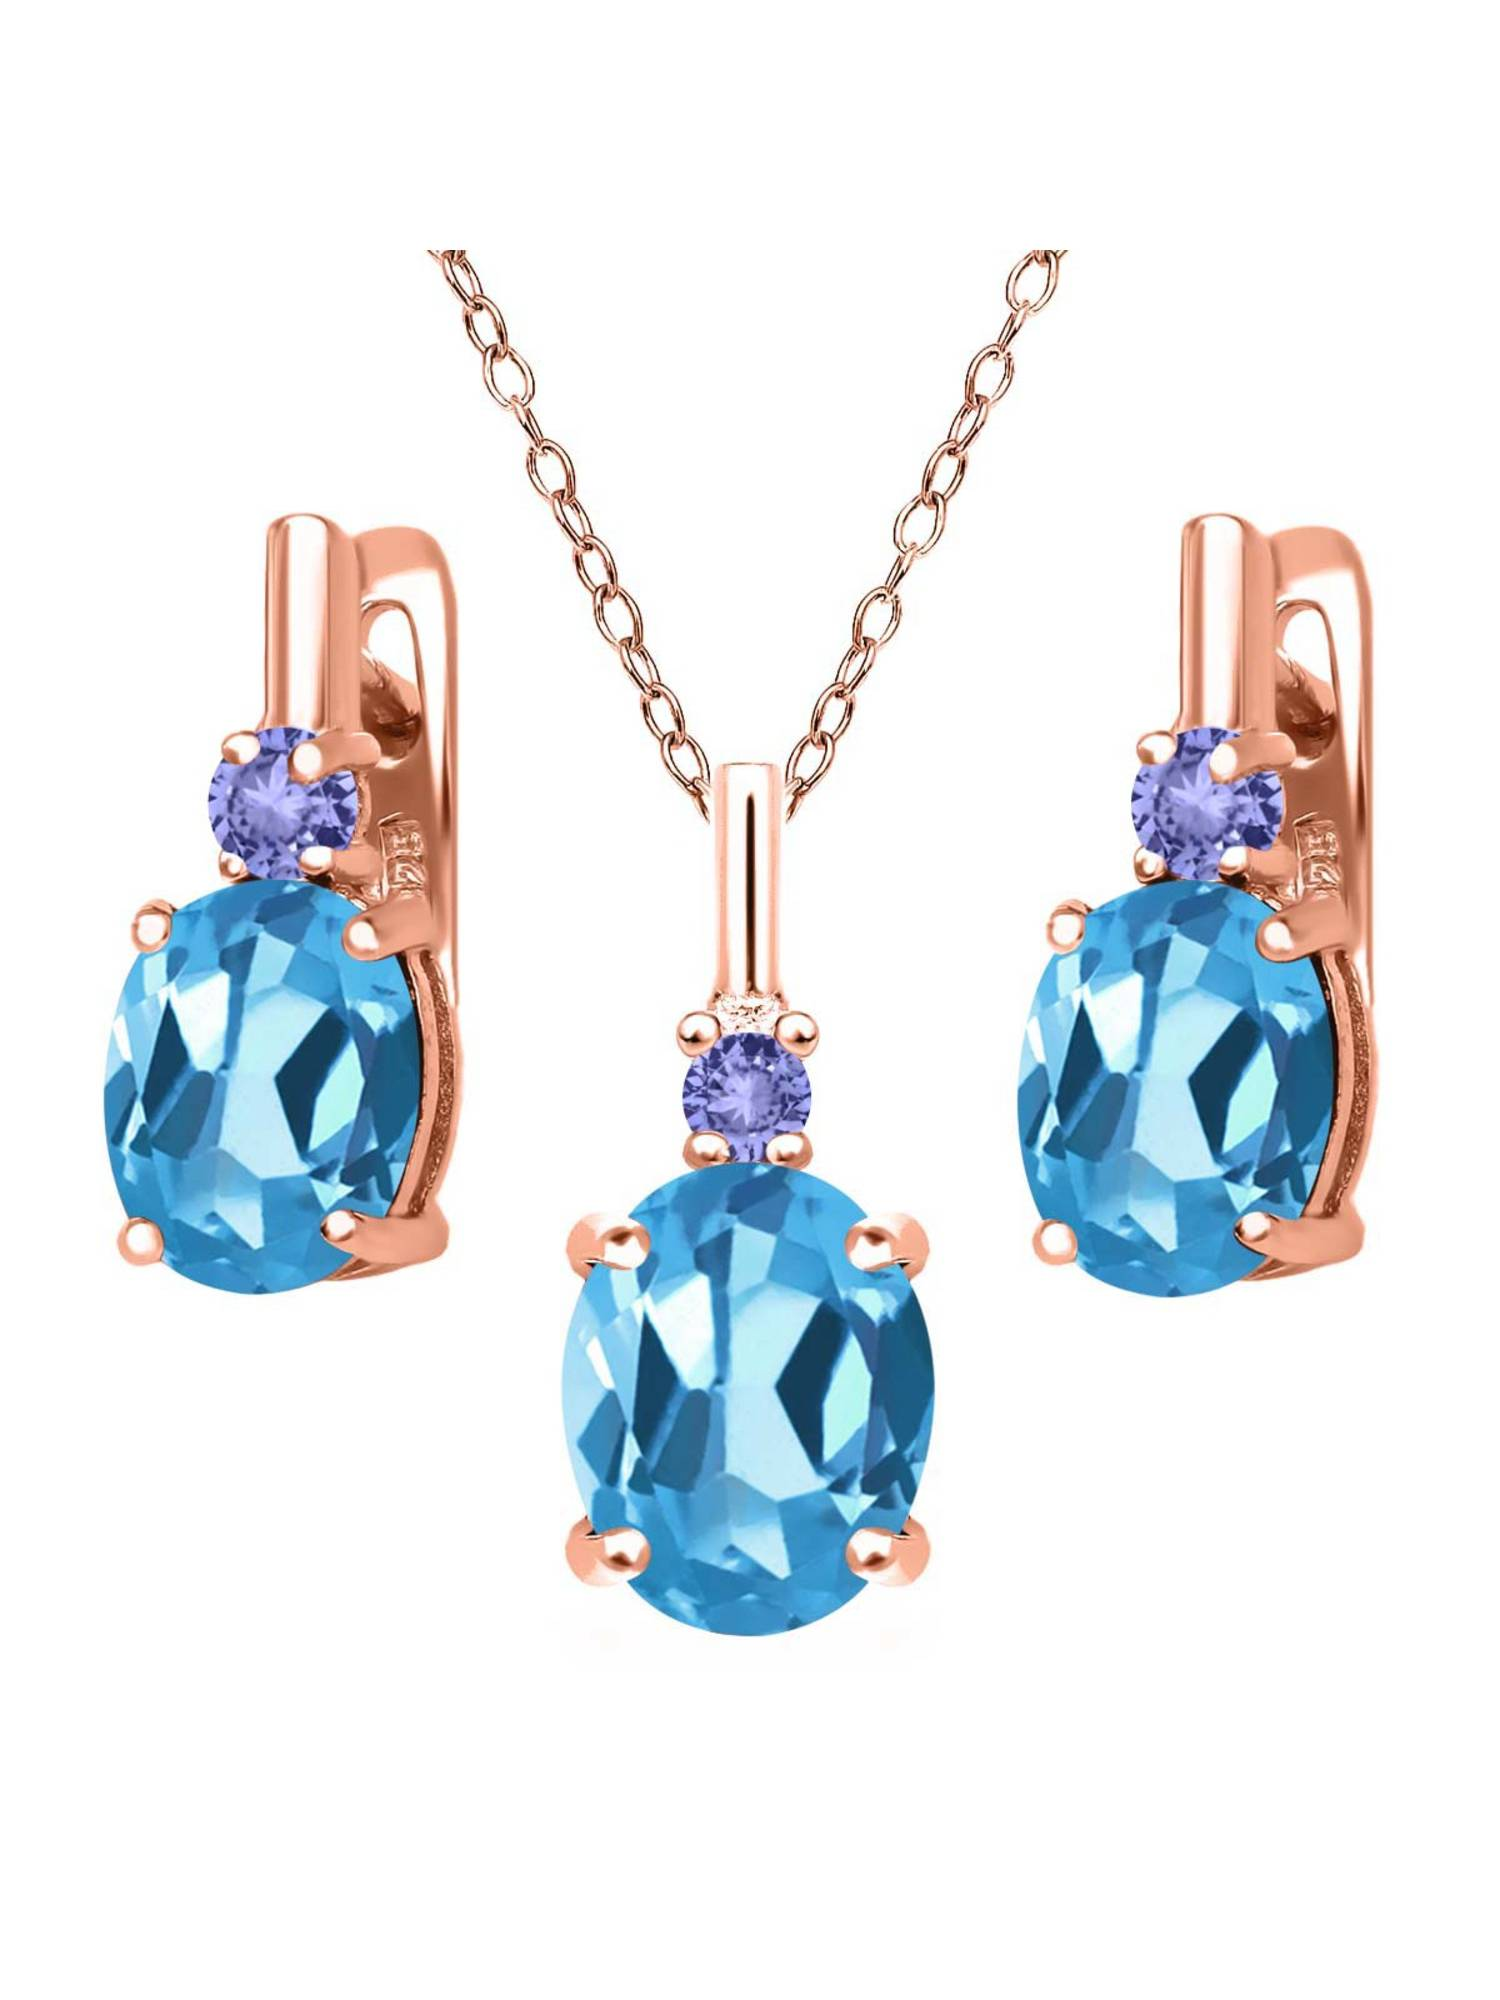 6.68 Ct Swiss Blue Topaz Blue Tanzanite 18K Rose Gold Plated Silver Pendant Earrings Set by